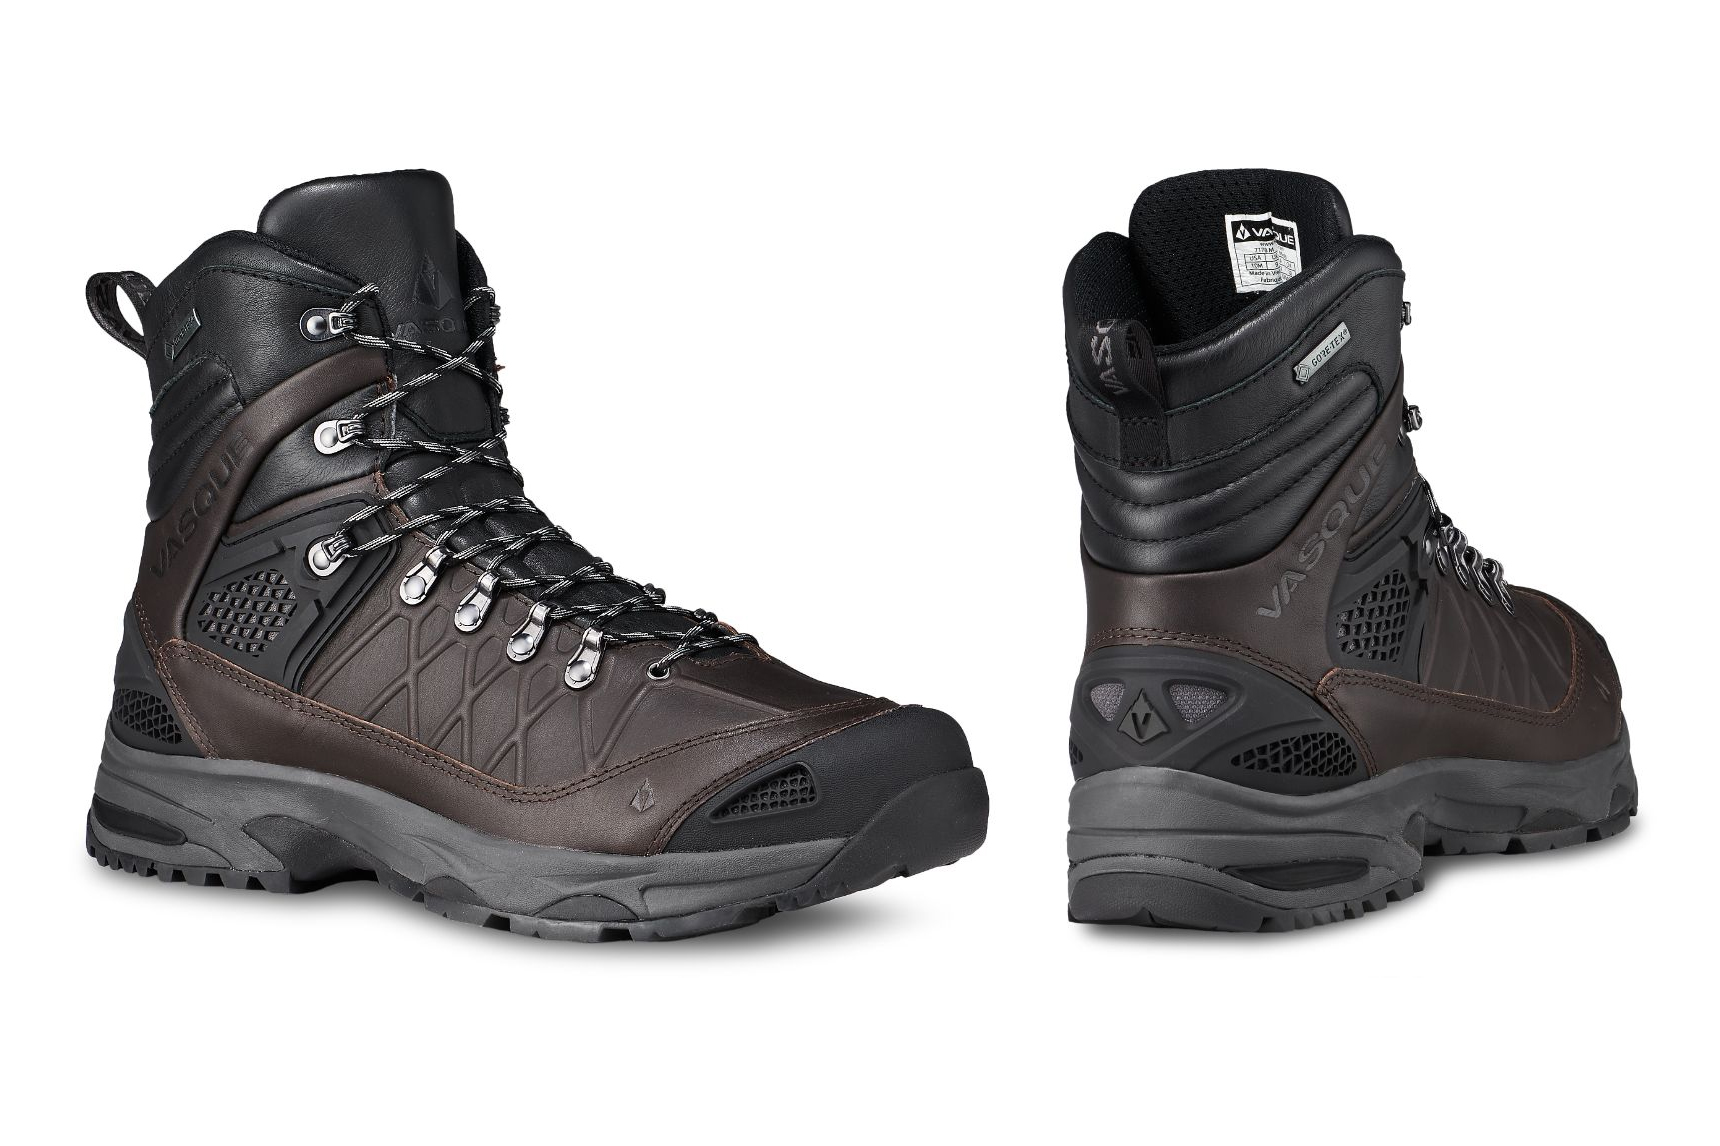 Vasque Saga LTR GTX hiking boot leather waterproof footwear 3